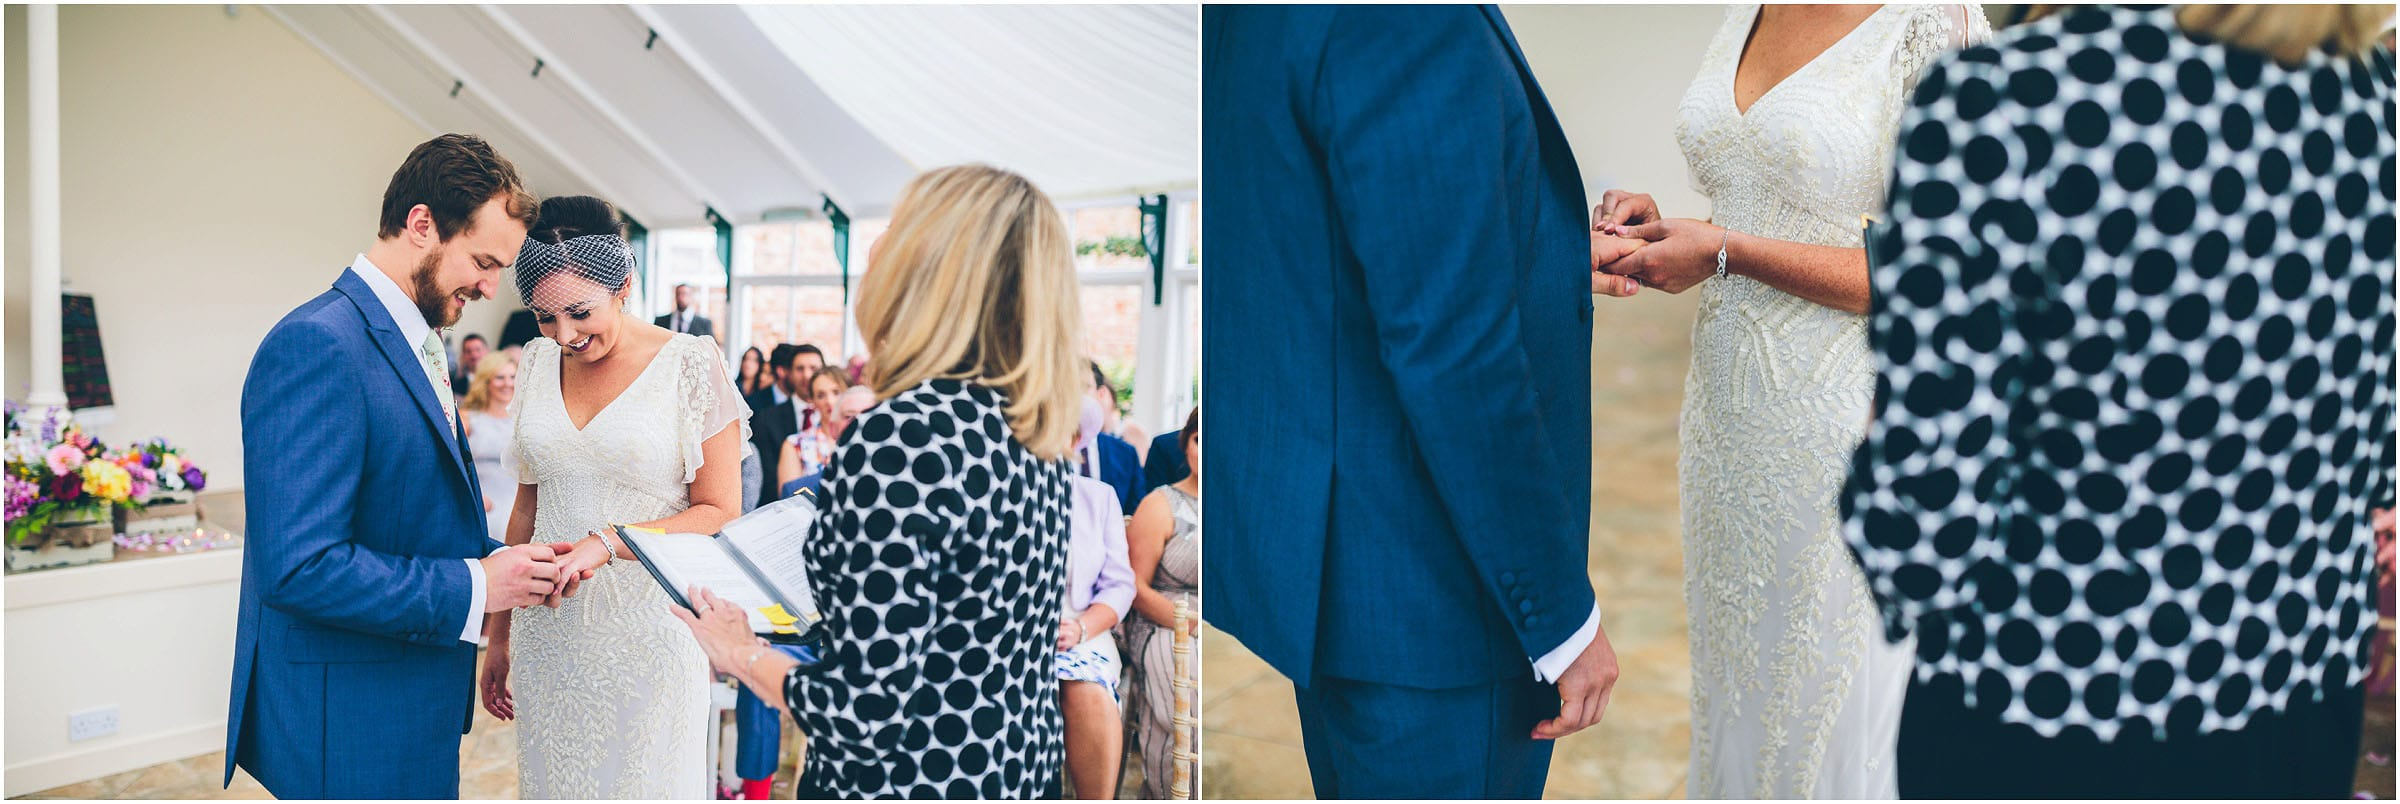 combermere_abbey_wedding_photography_0049